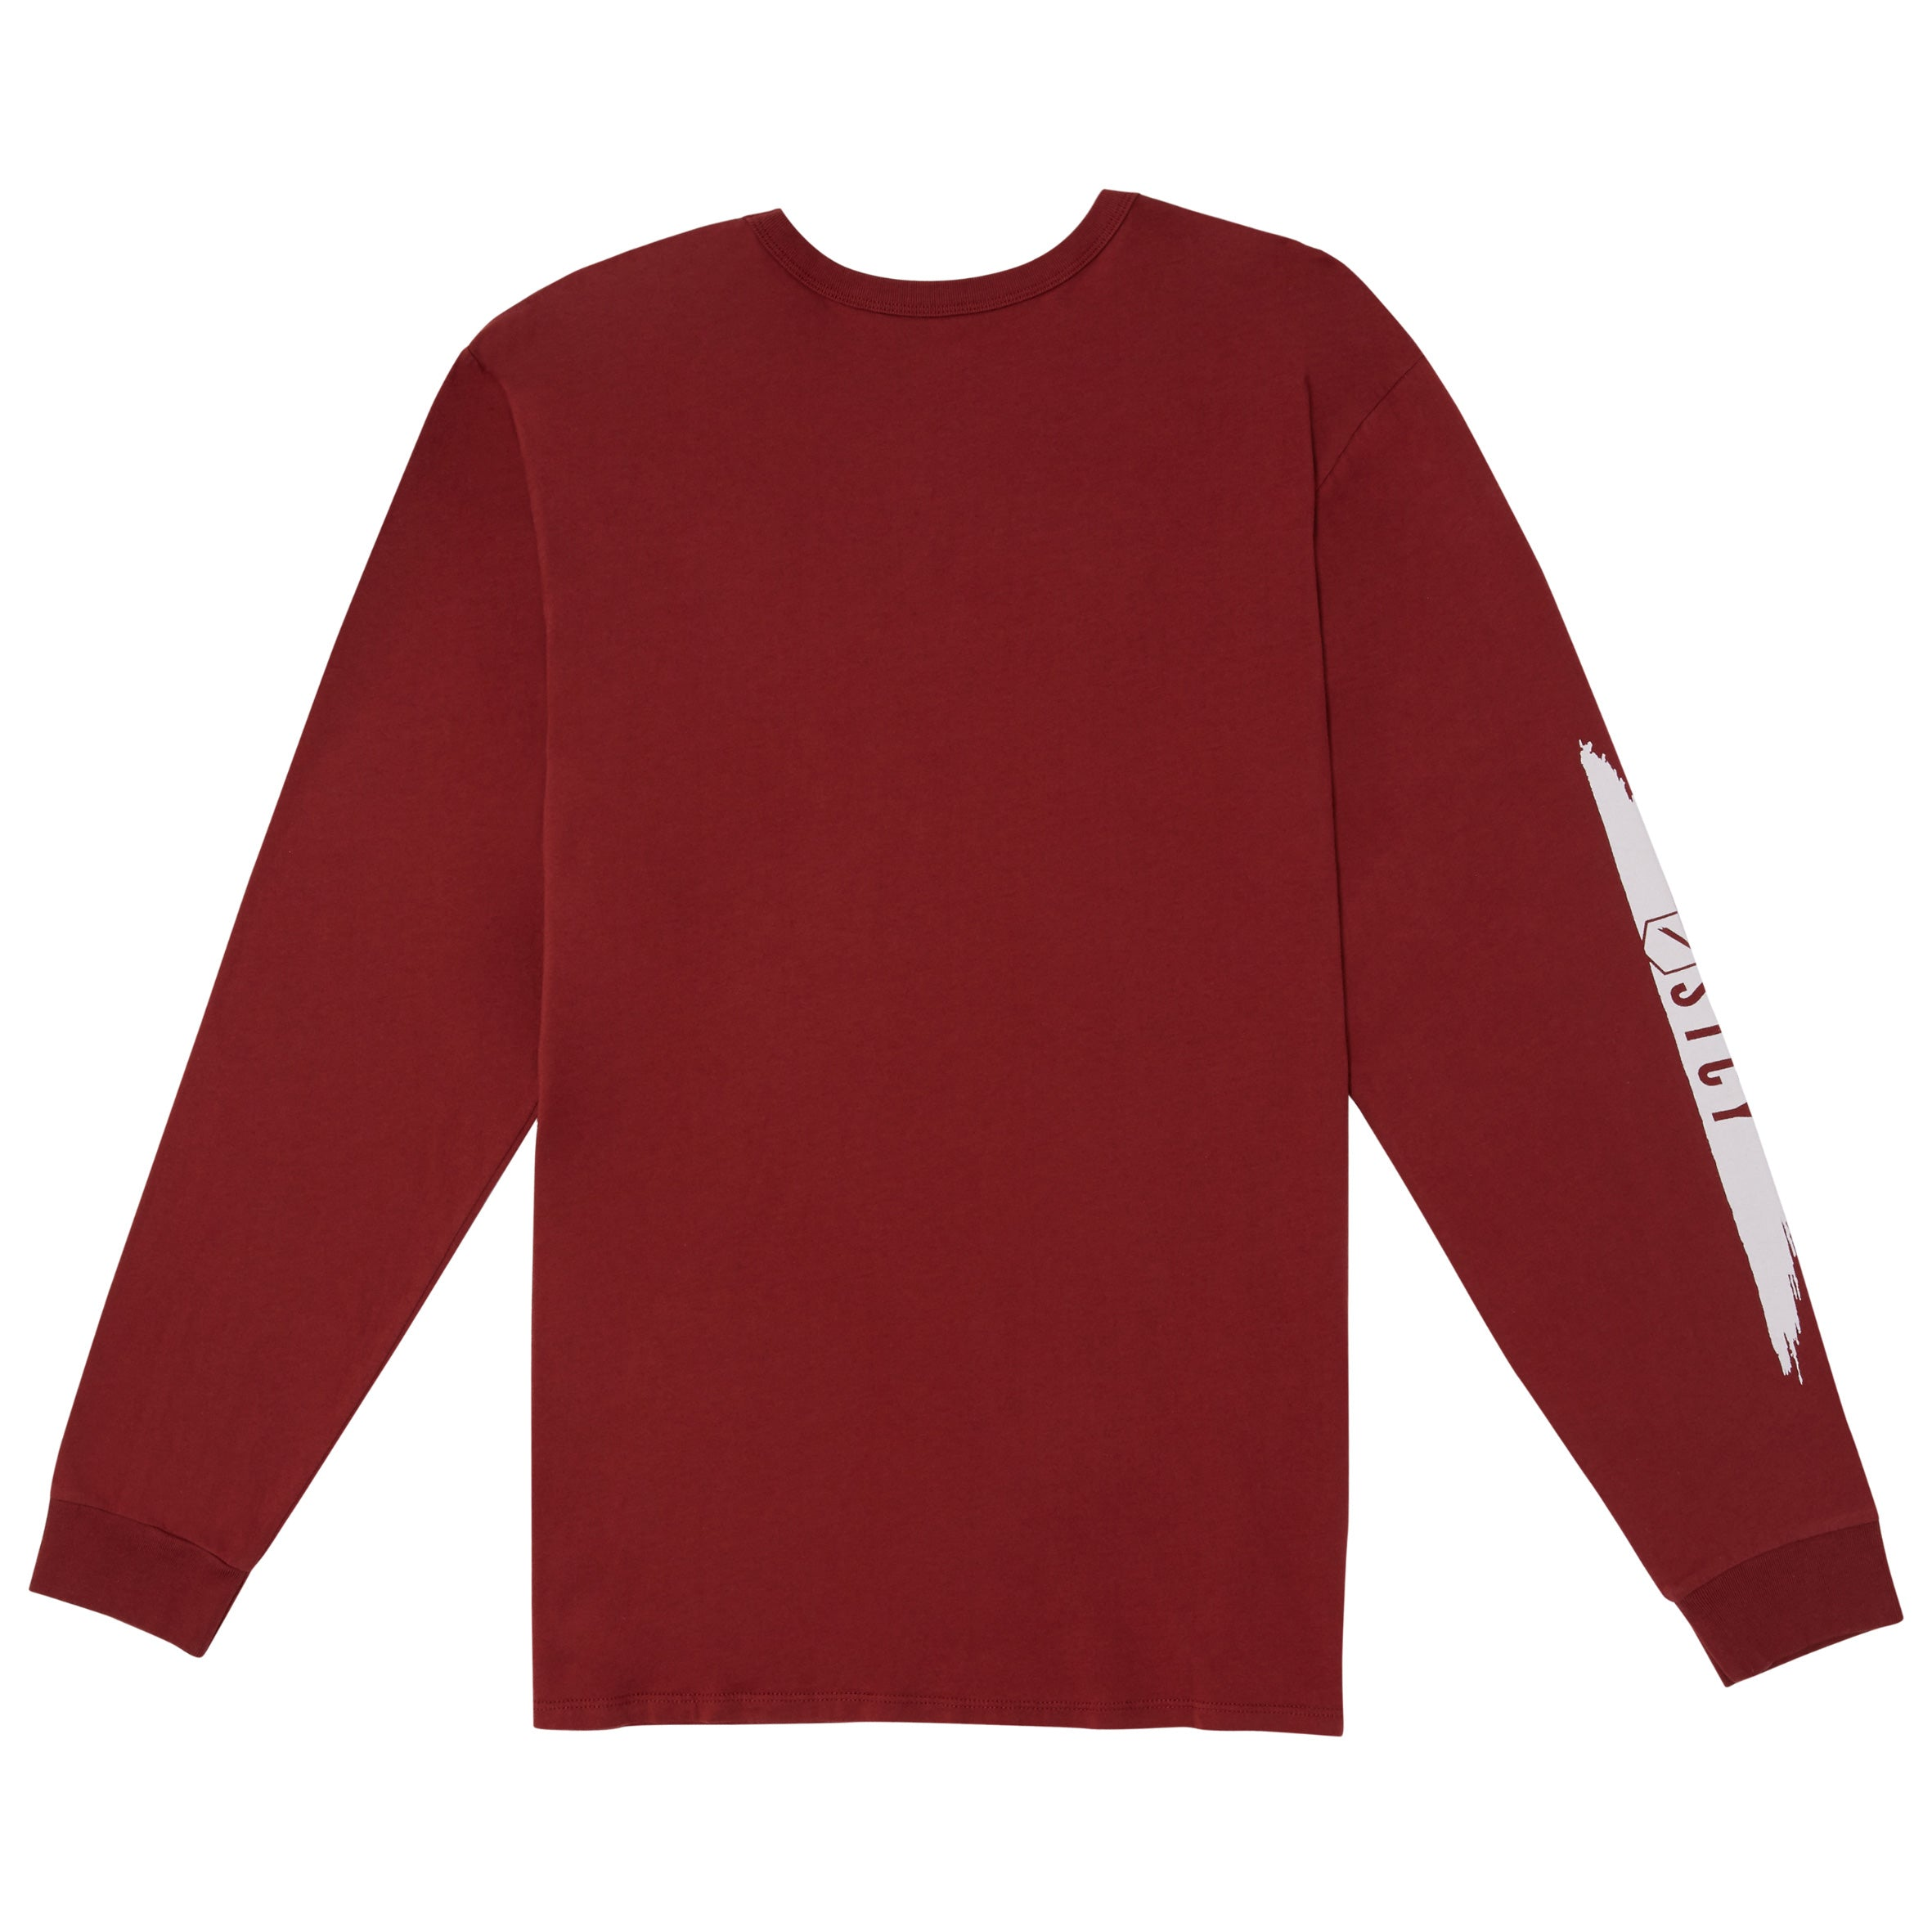 SLASH 2 LONG SLEEVE TEE - WINE